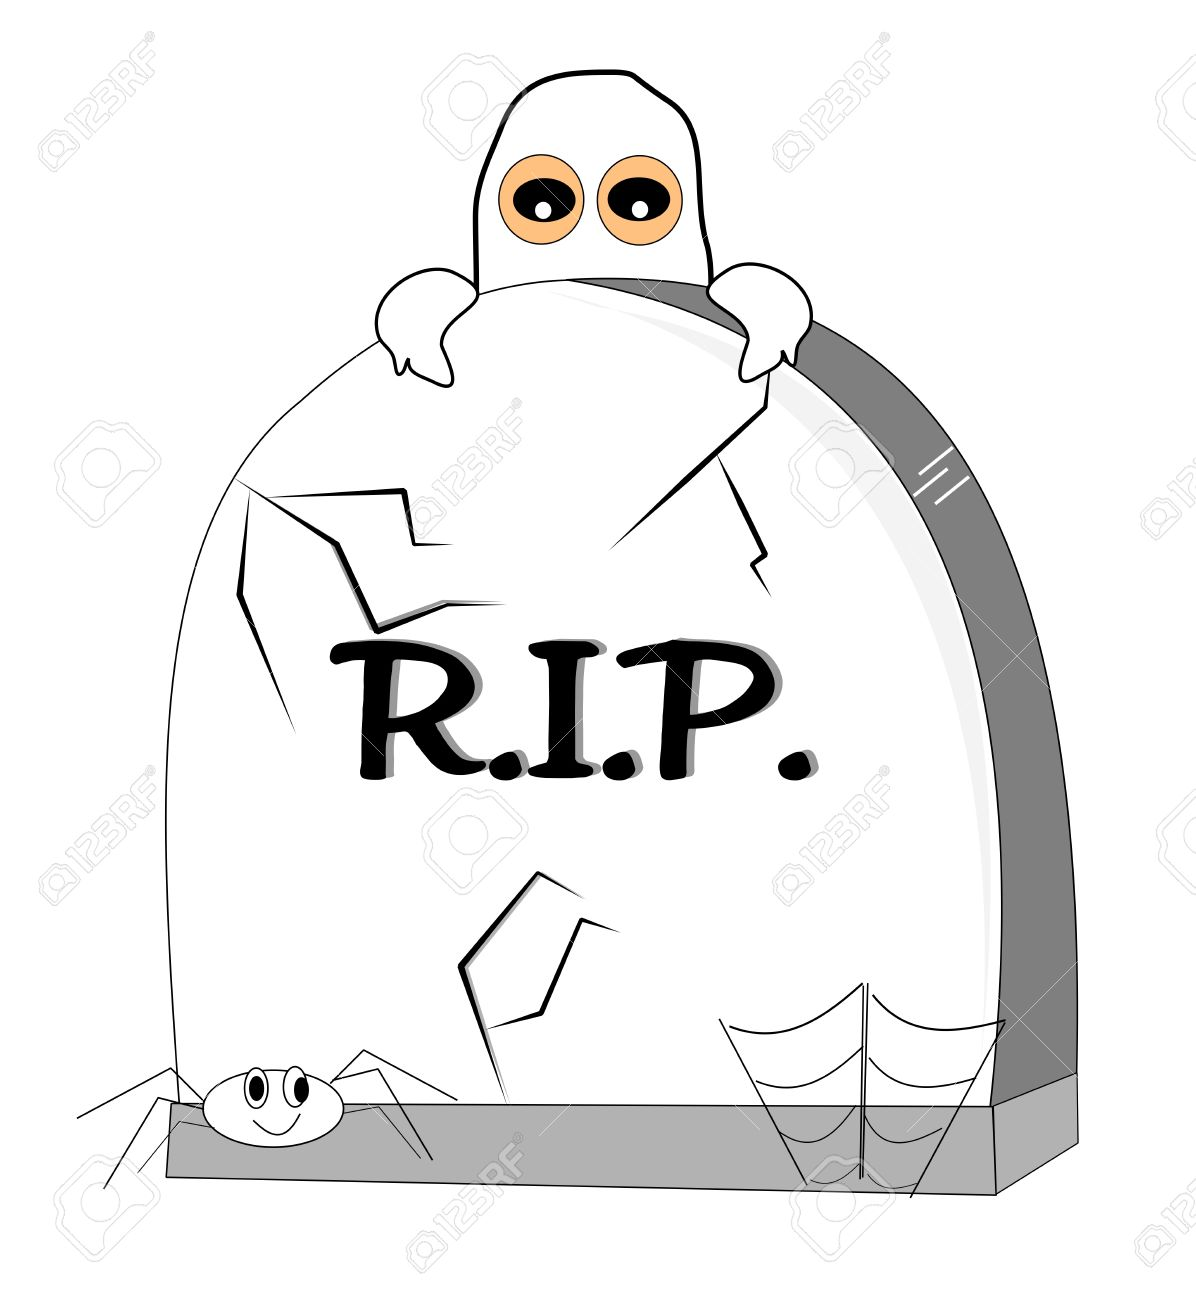 Rip Gravestone Stock Photos & Pictures. Royalty Free Rip ...